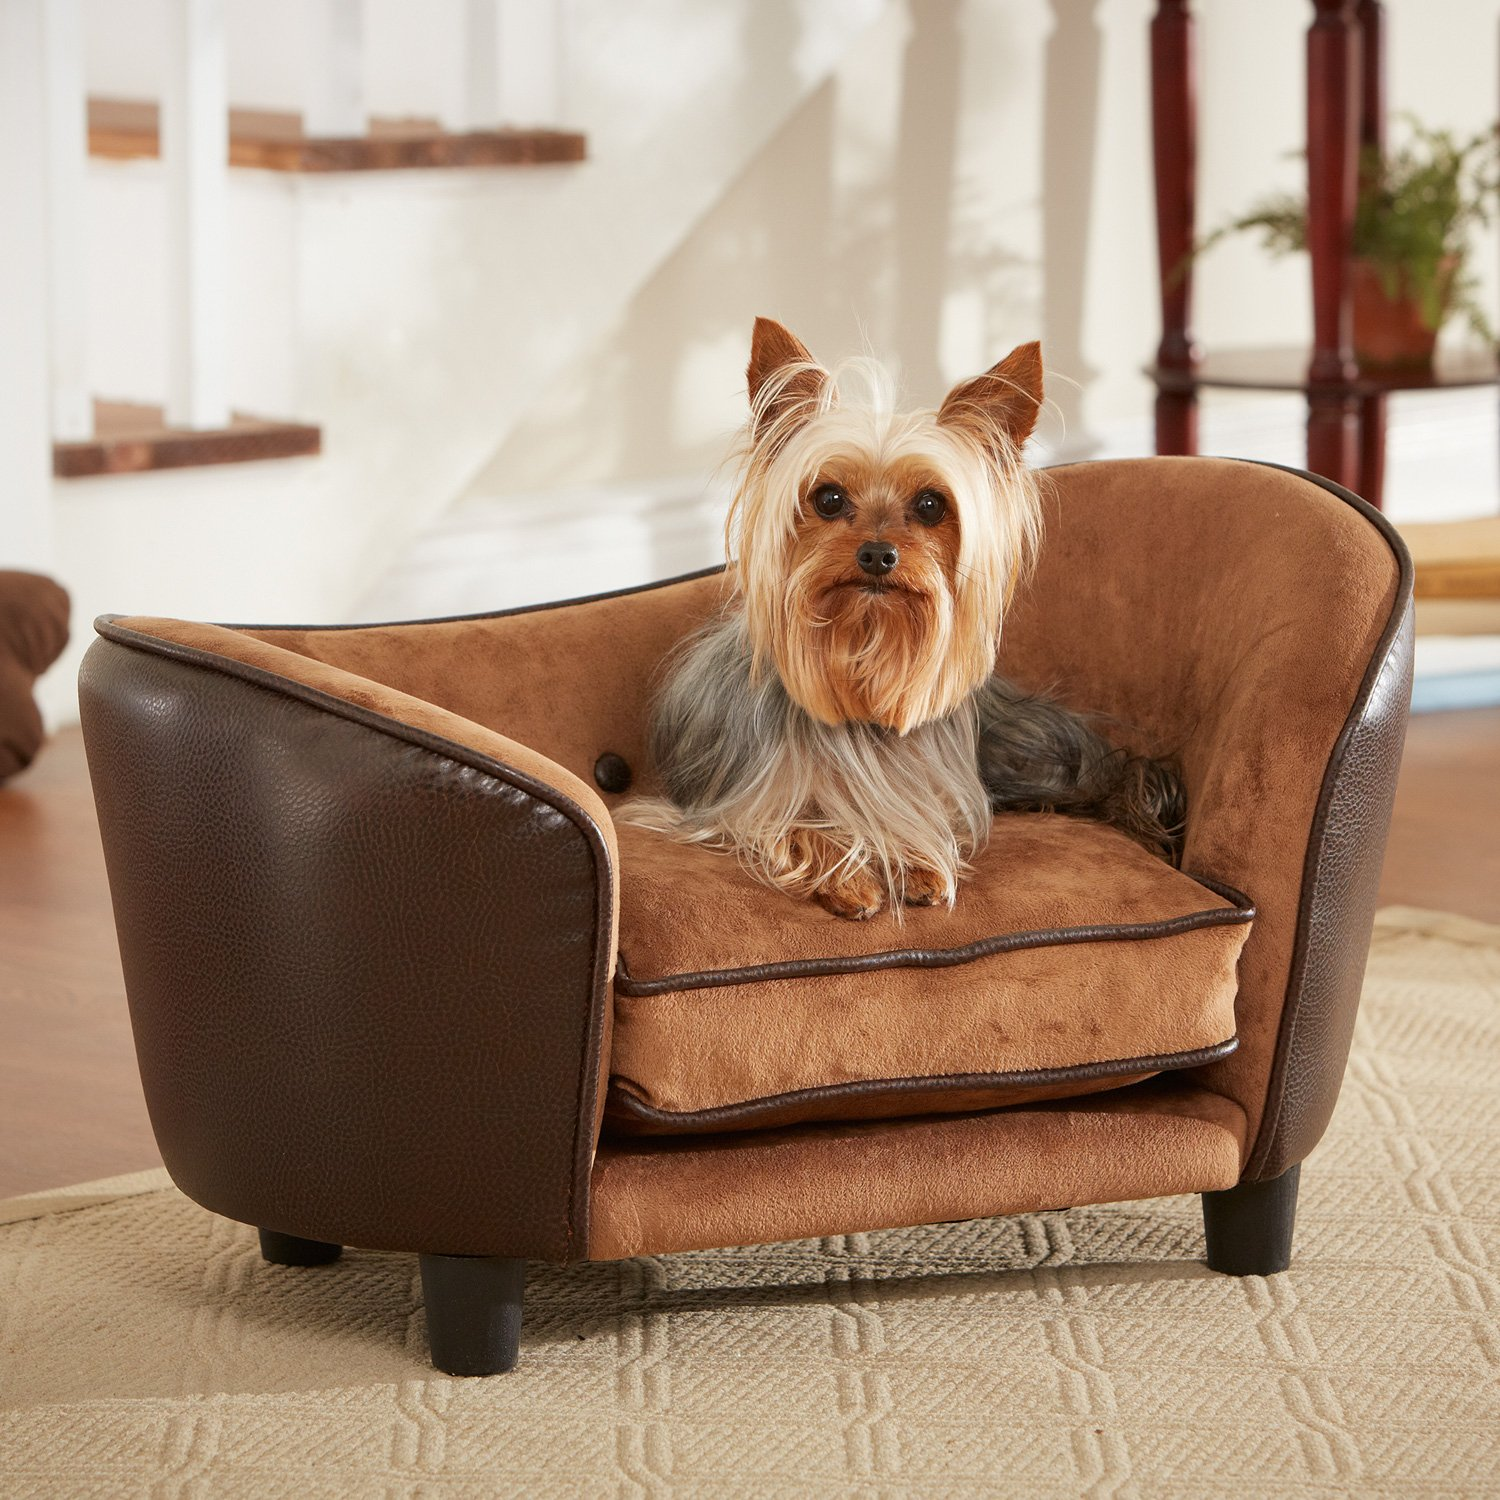 Remarkable Enchanted Home Pet Ultra Leather Snuggle Dog Bed In Brown Machost Co Dining Chair Design Ideas Machostcouk